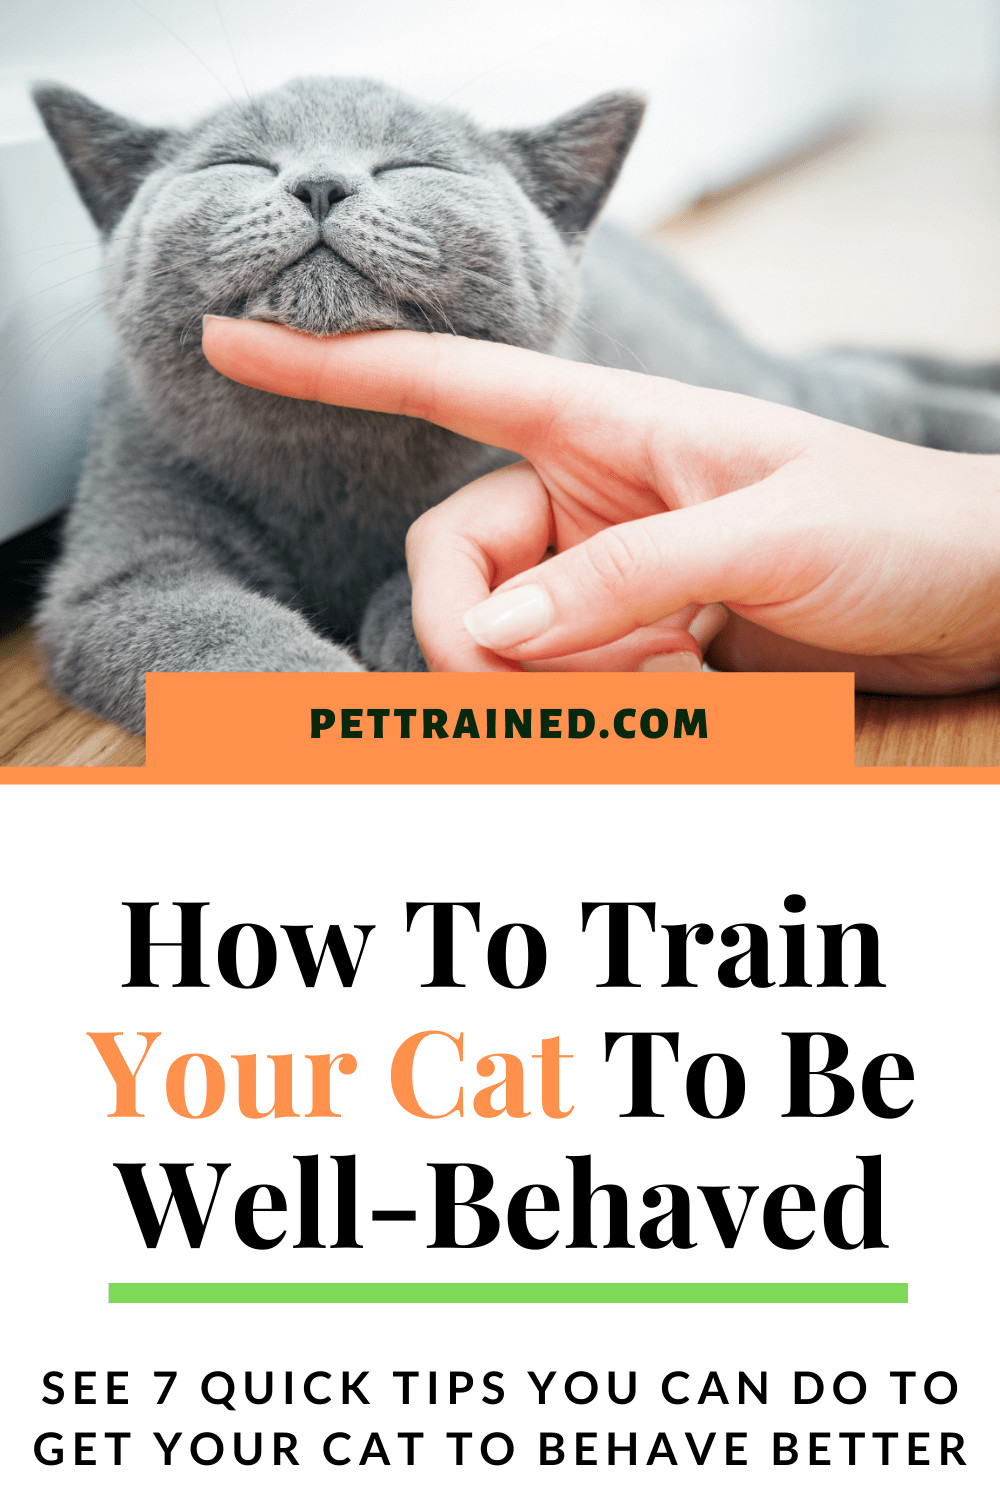 Train a cat to behave well